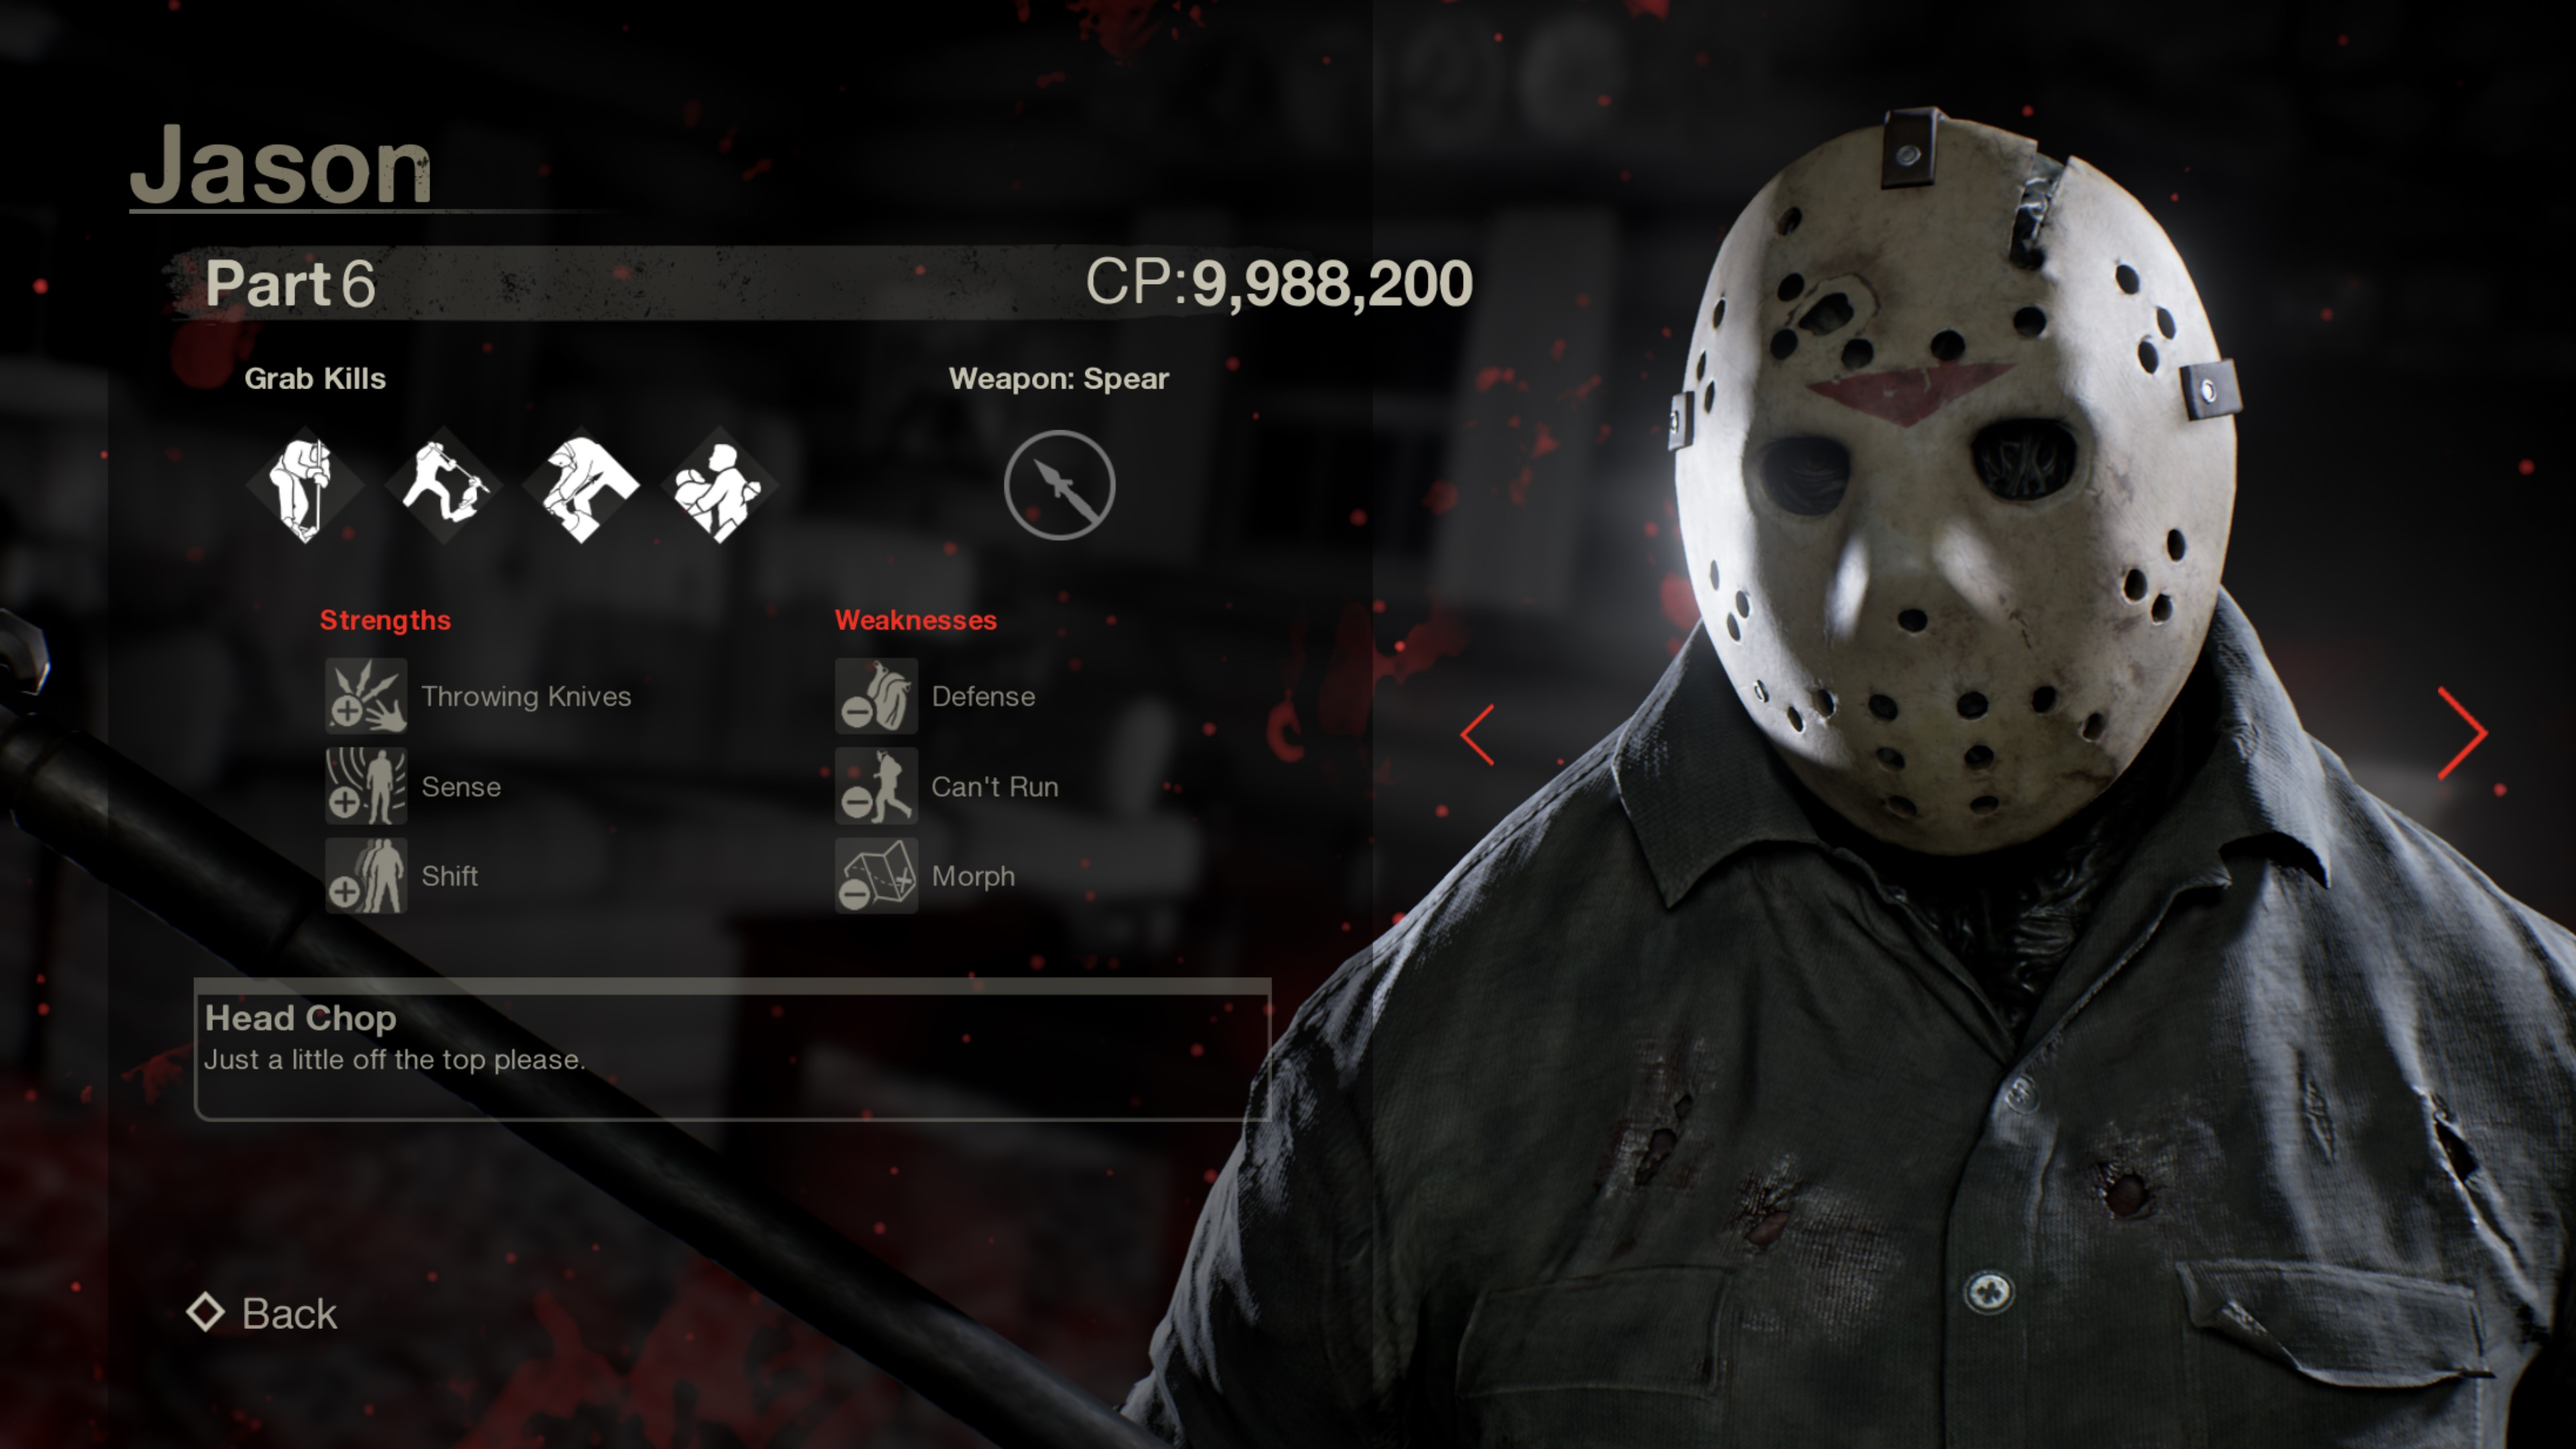 Jason from Friday the 13th part 6